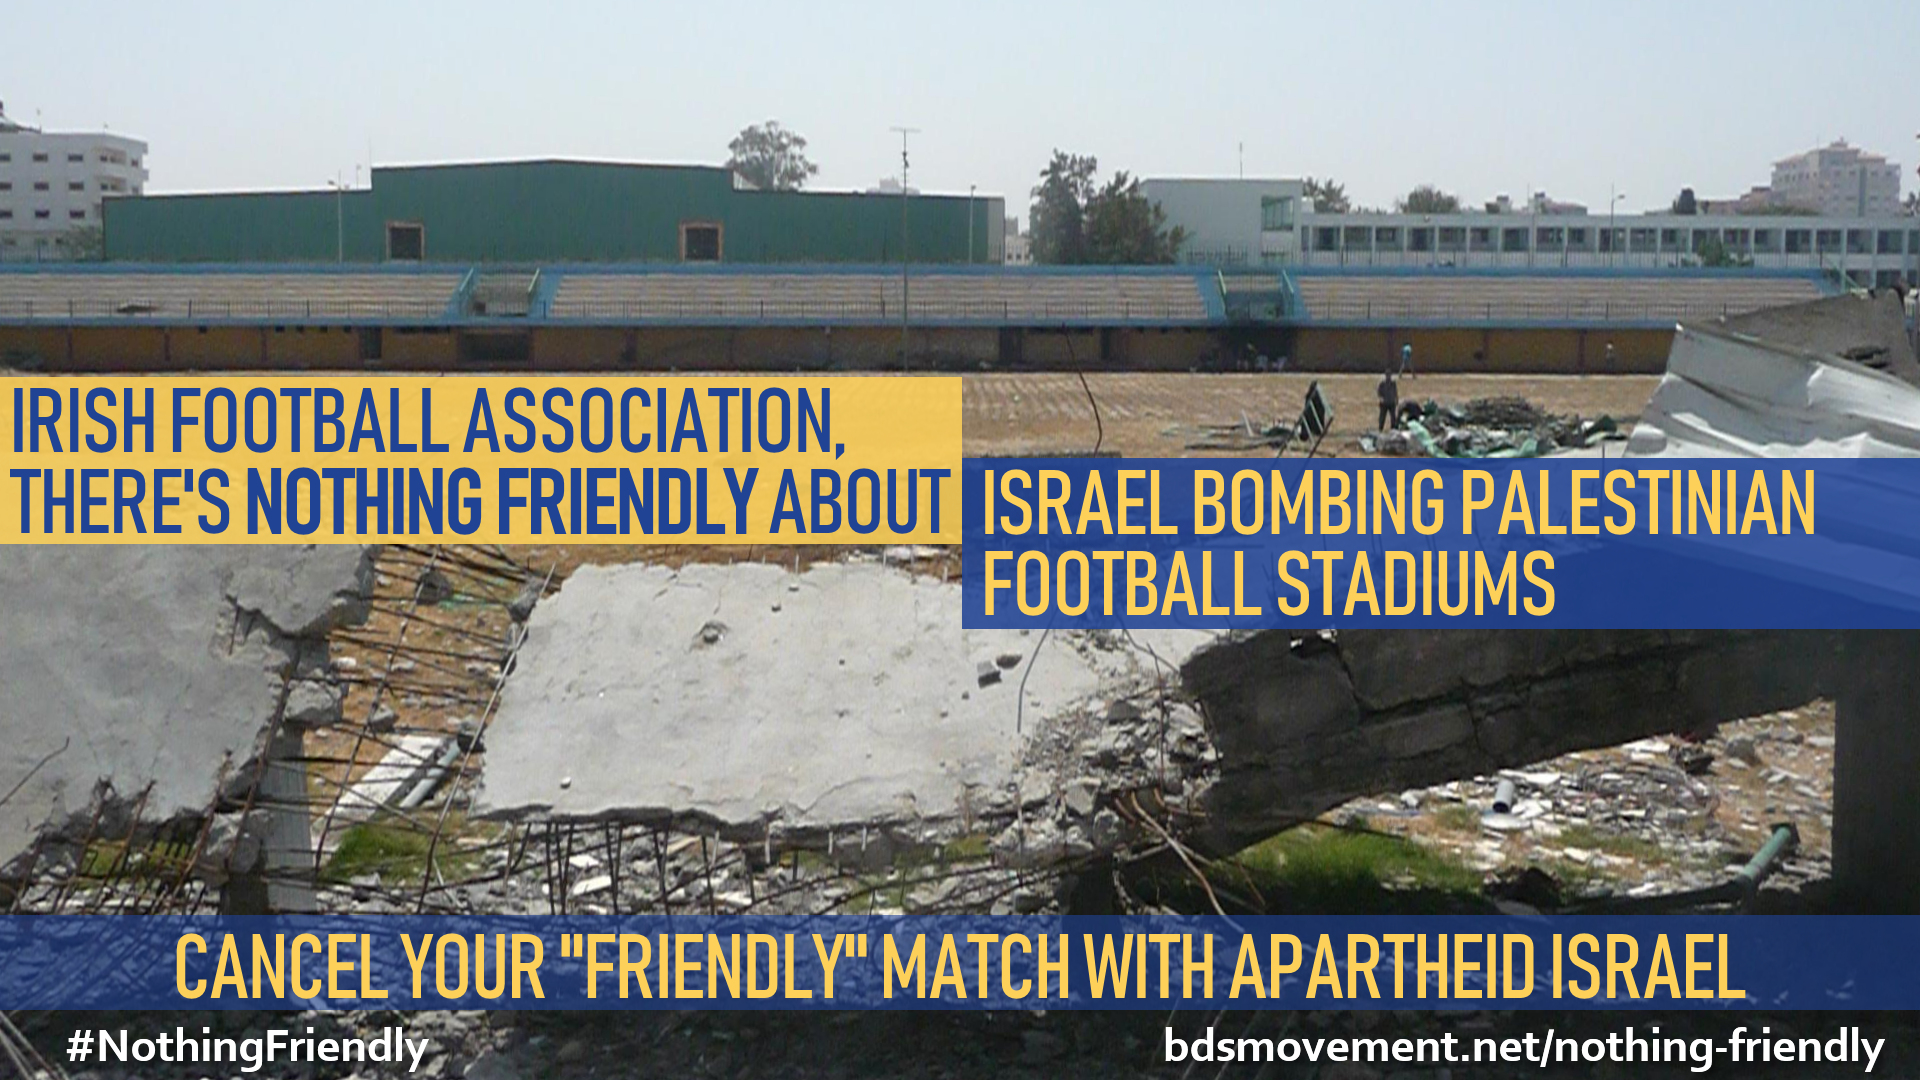 Irish Football Assoc, there's nothing friendly about bombing Palestinian football stadiums